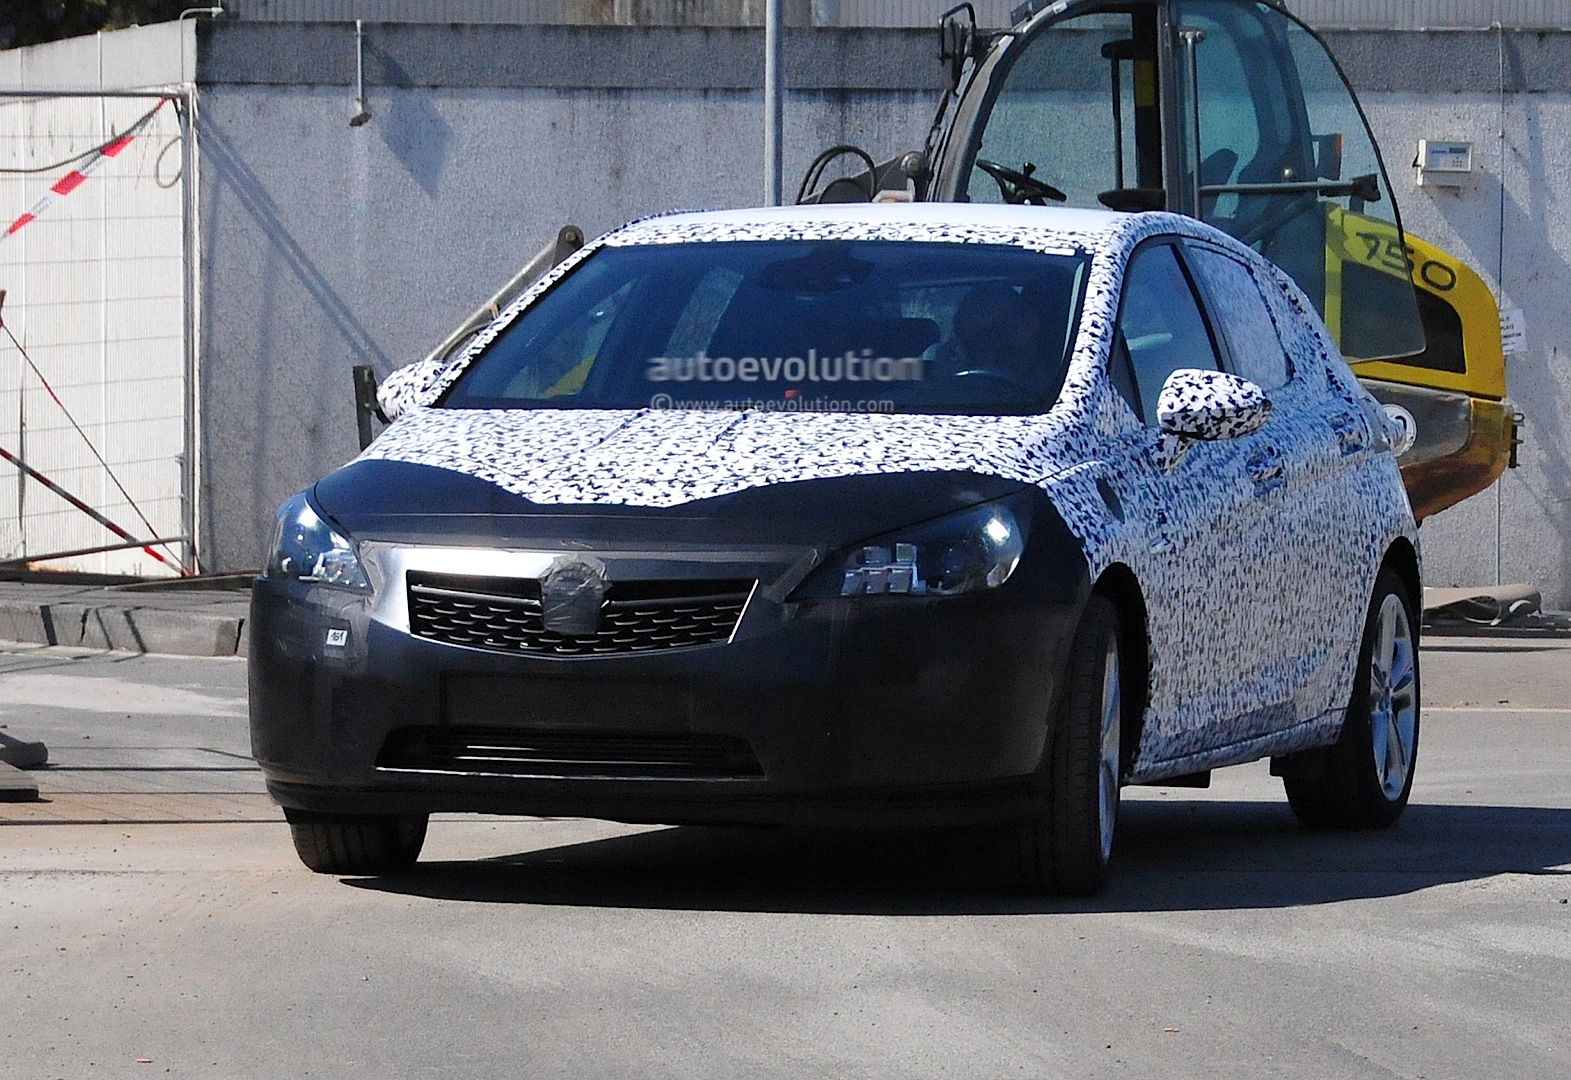 [2015] Opel ASTRA K New-opel-astra-k-7th-generation-spied-in-detail-photo-gallery_7